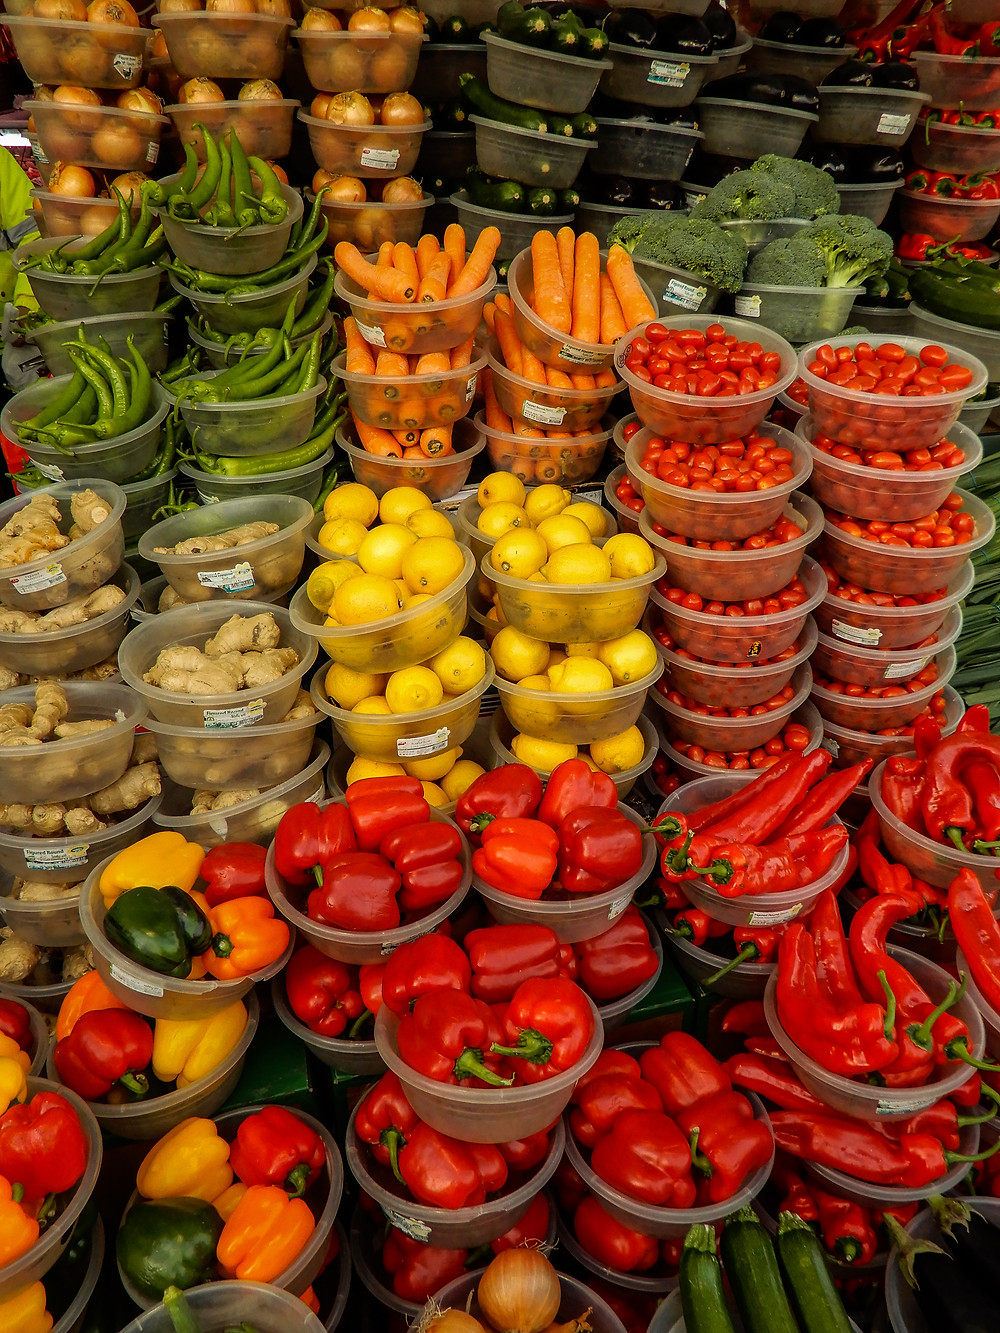 Piles of vegetables | Shopping sustainably and vegan on a budget at Ridley Road Market | Vegan on a Budget 101 | Vegan guide to eating on a budget/cheaply | The Doepy Vegan